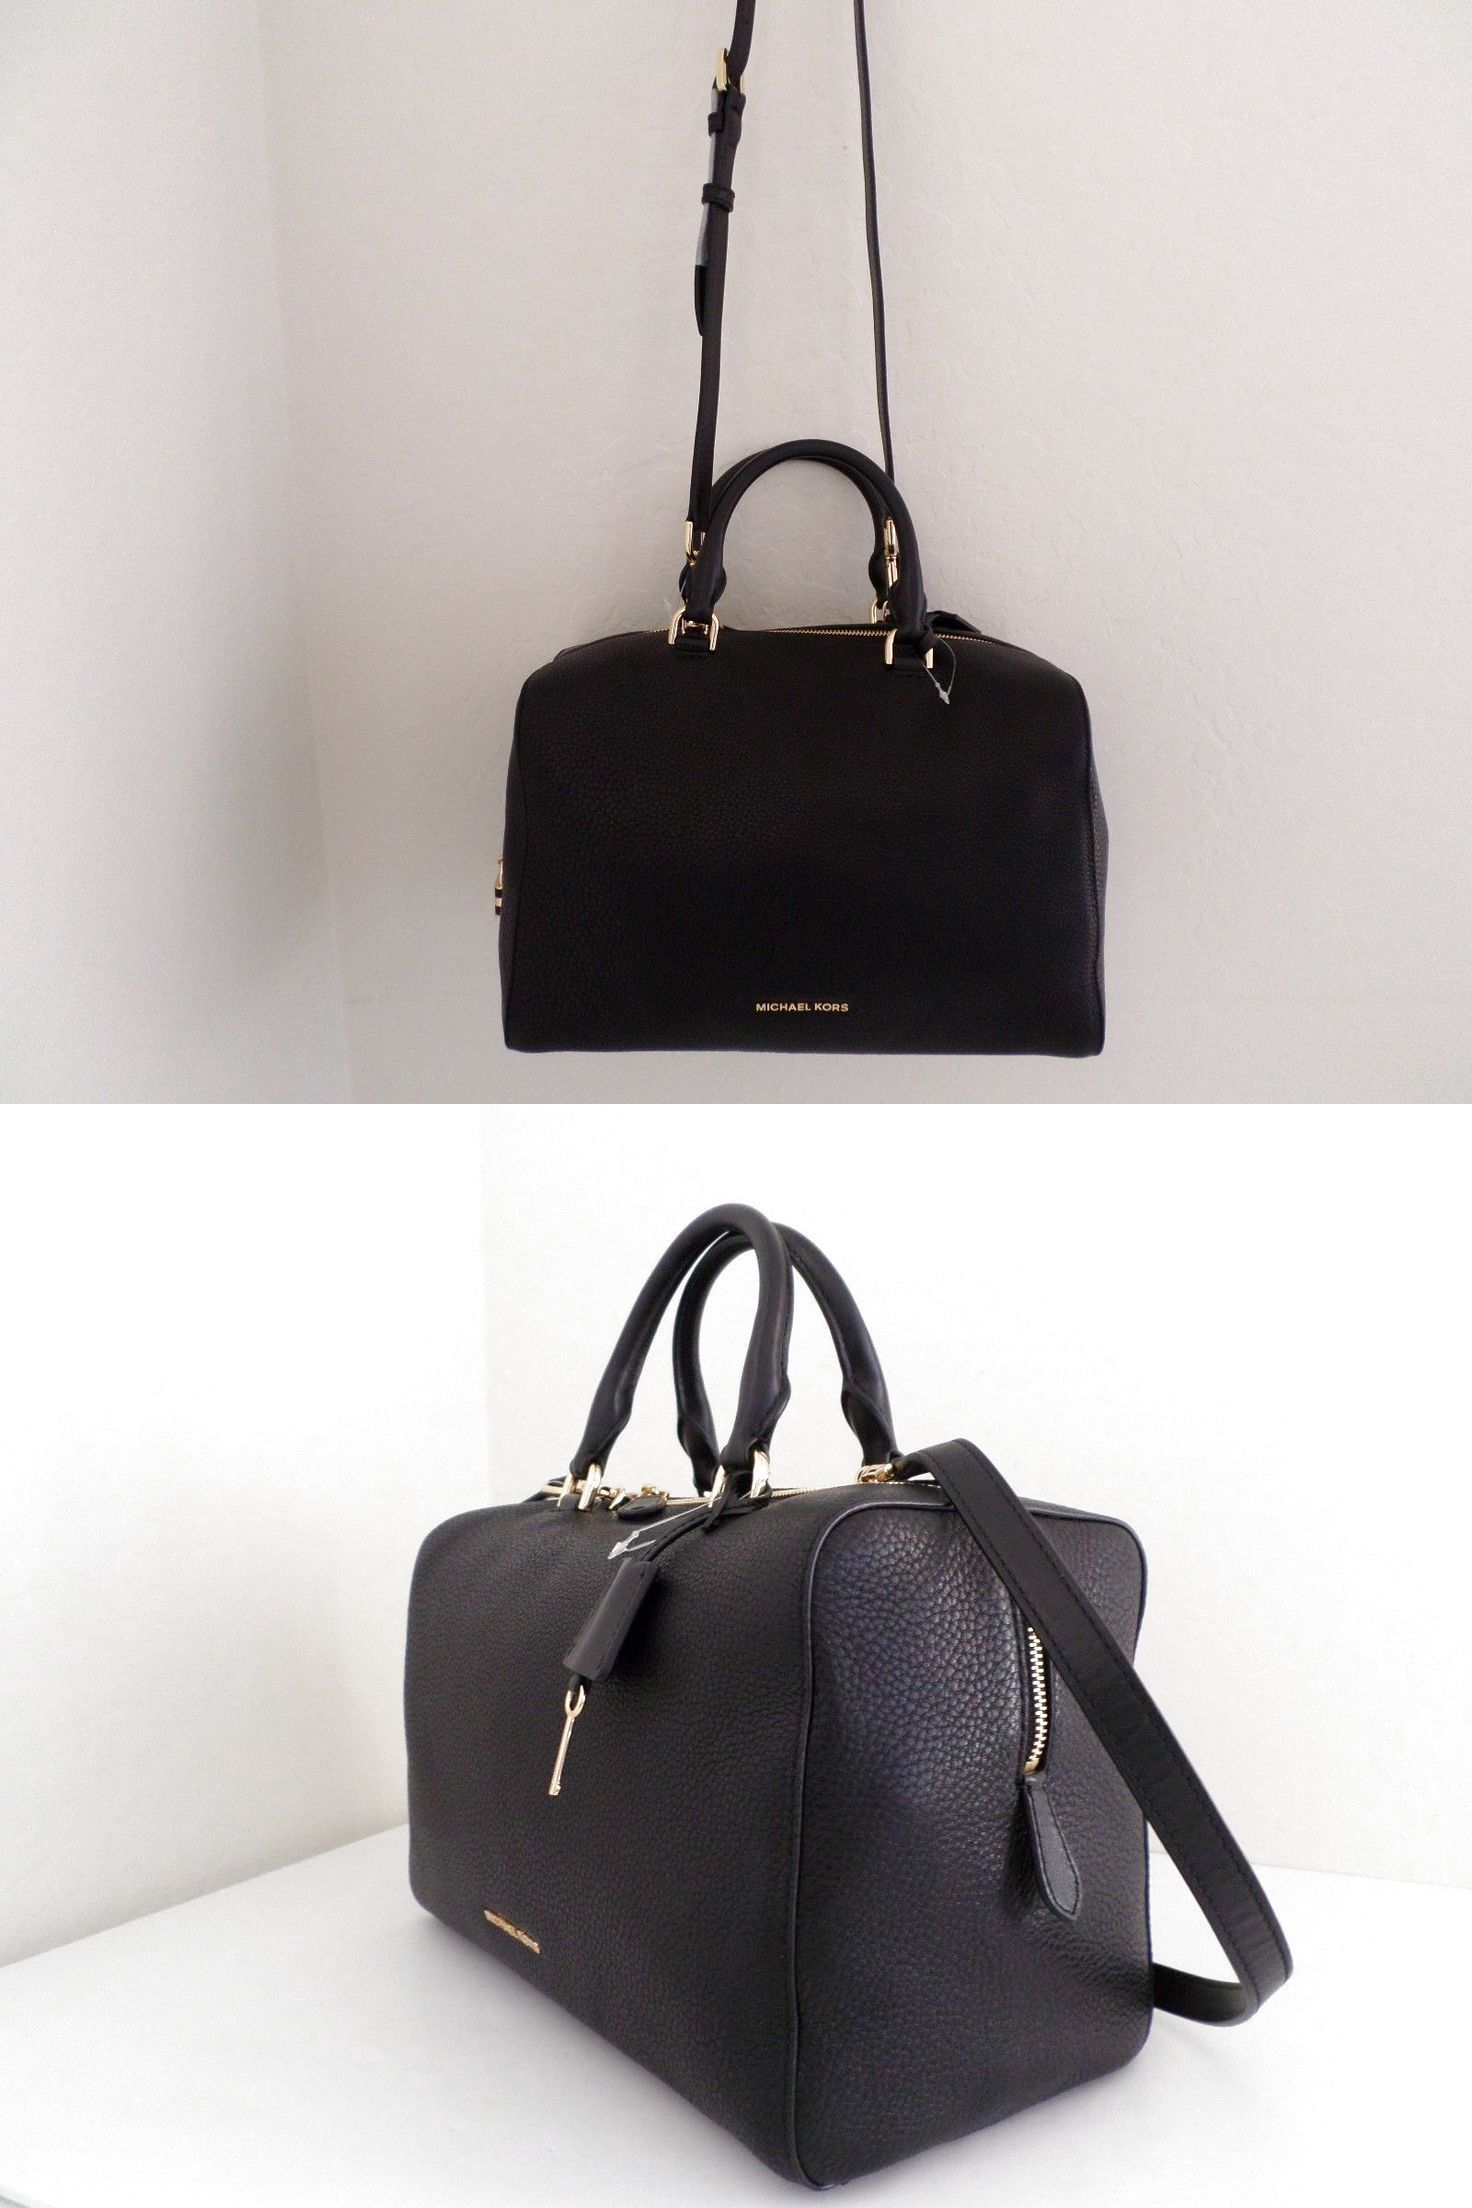 7c9ef0a4e32f NWT AUTHENTIC MICHAEL KORS KIRBY LARGE LEATHER SATCHEL- 348-BLACK  224.99